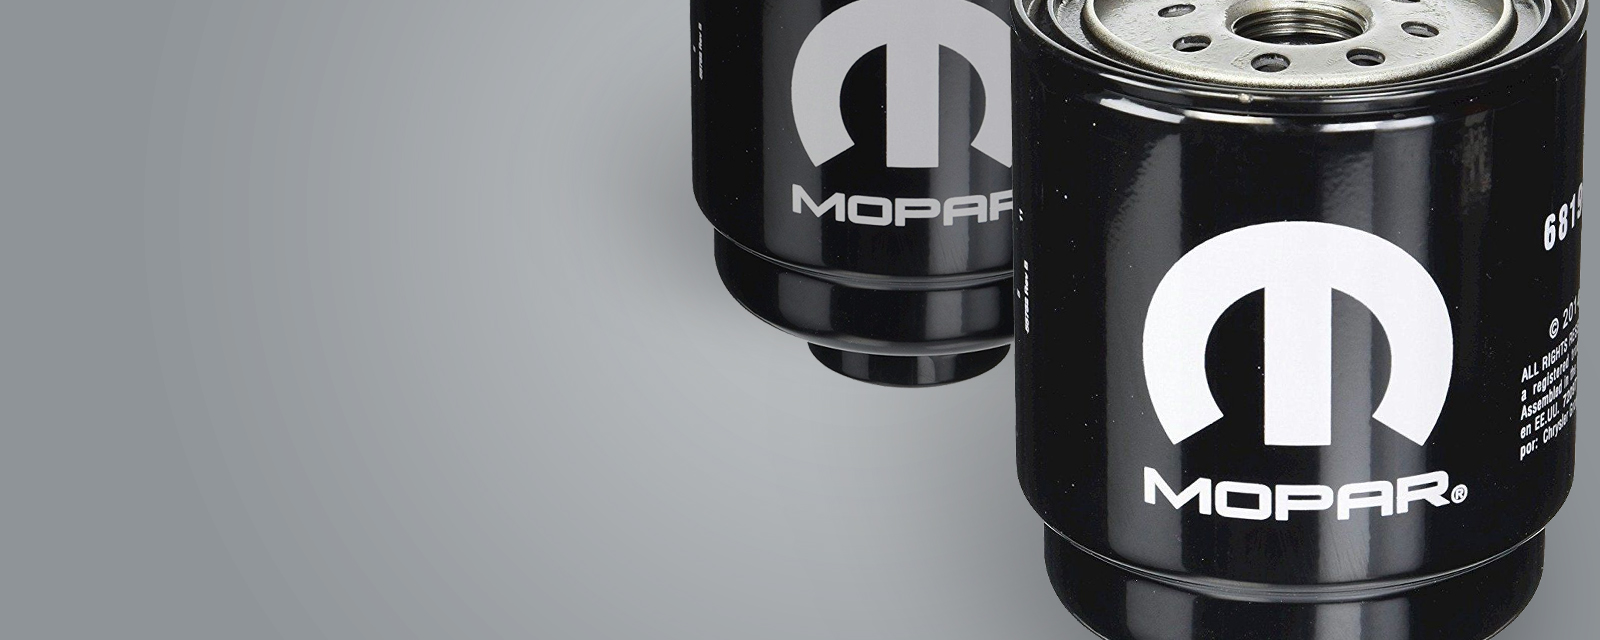 MOPAR Parts and More